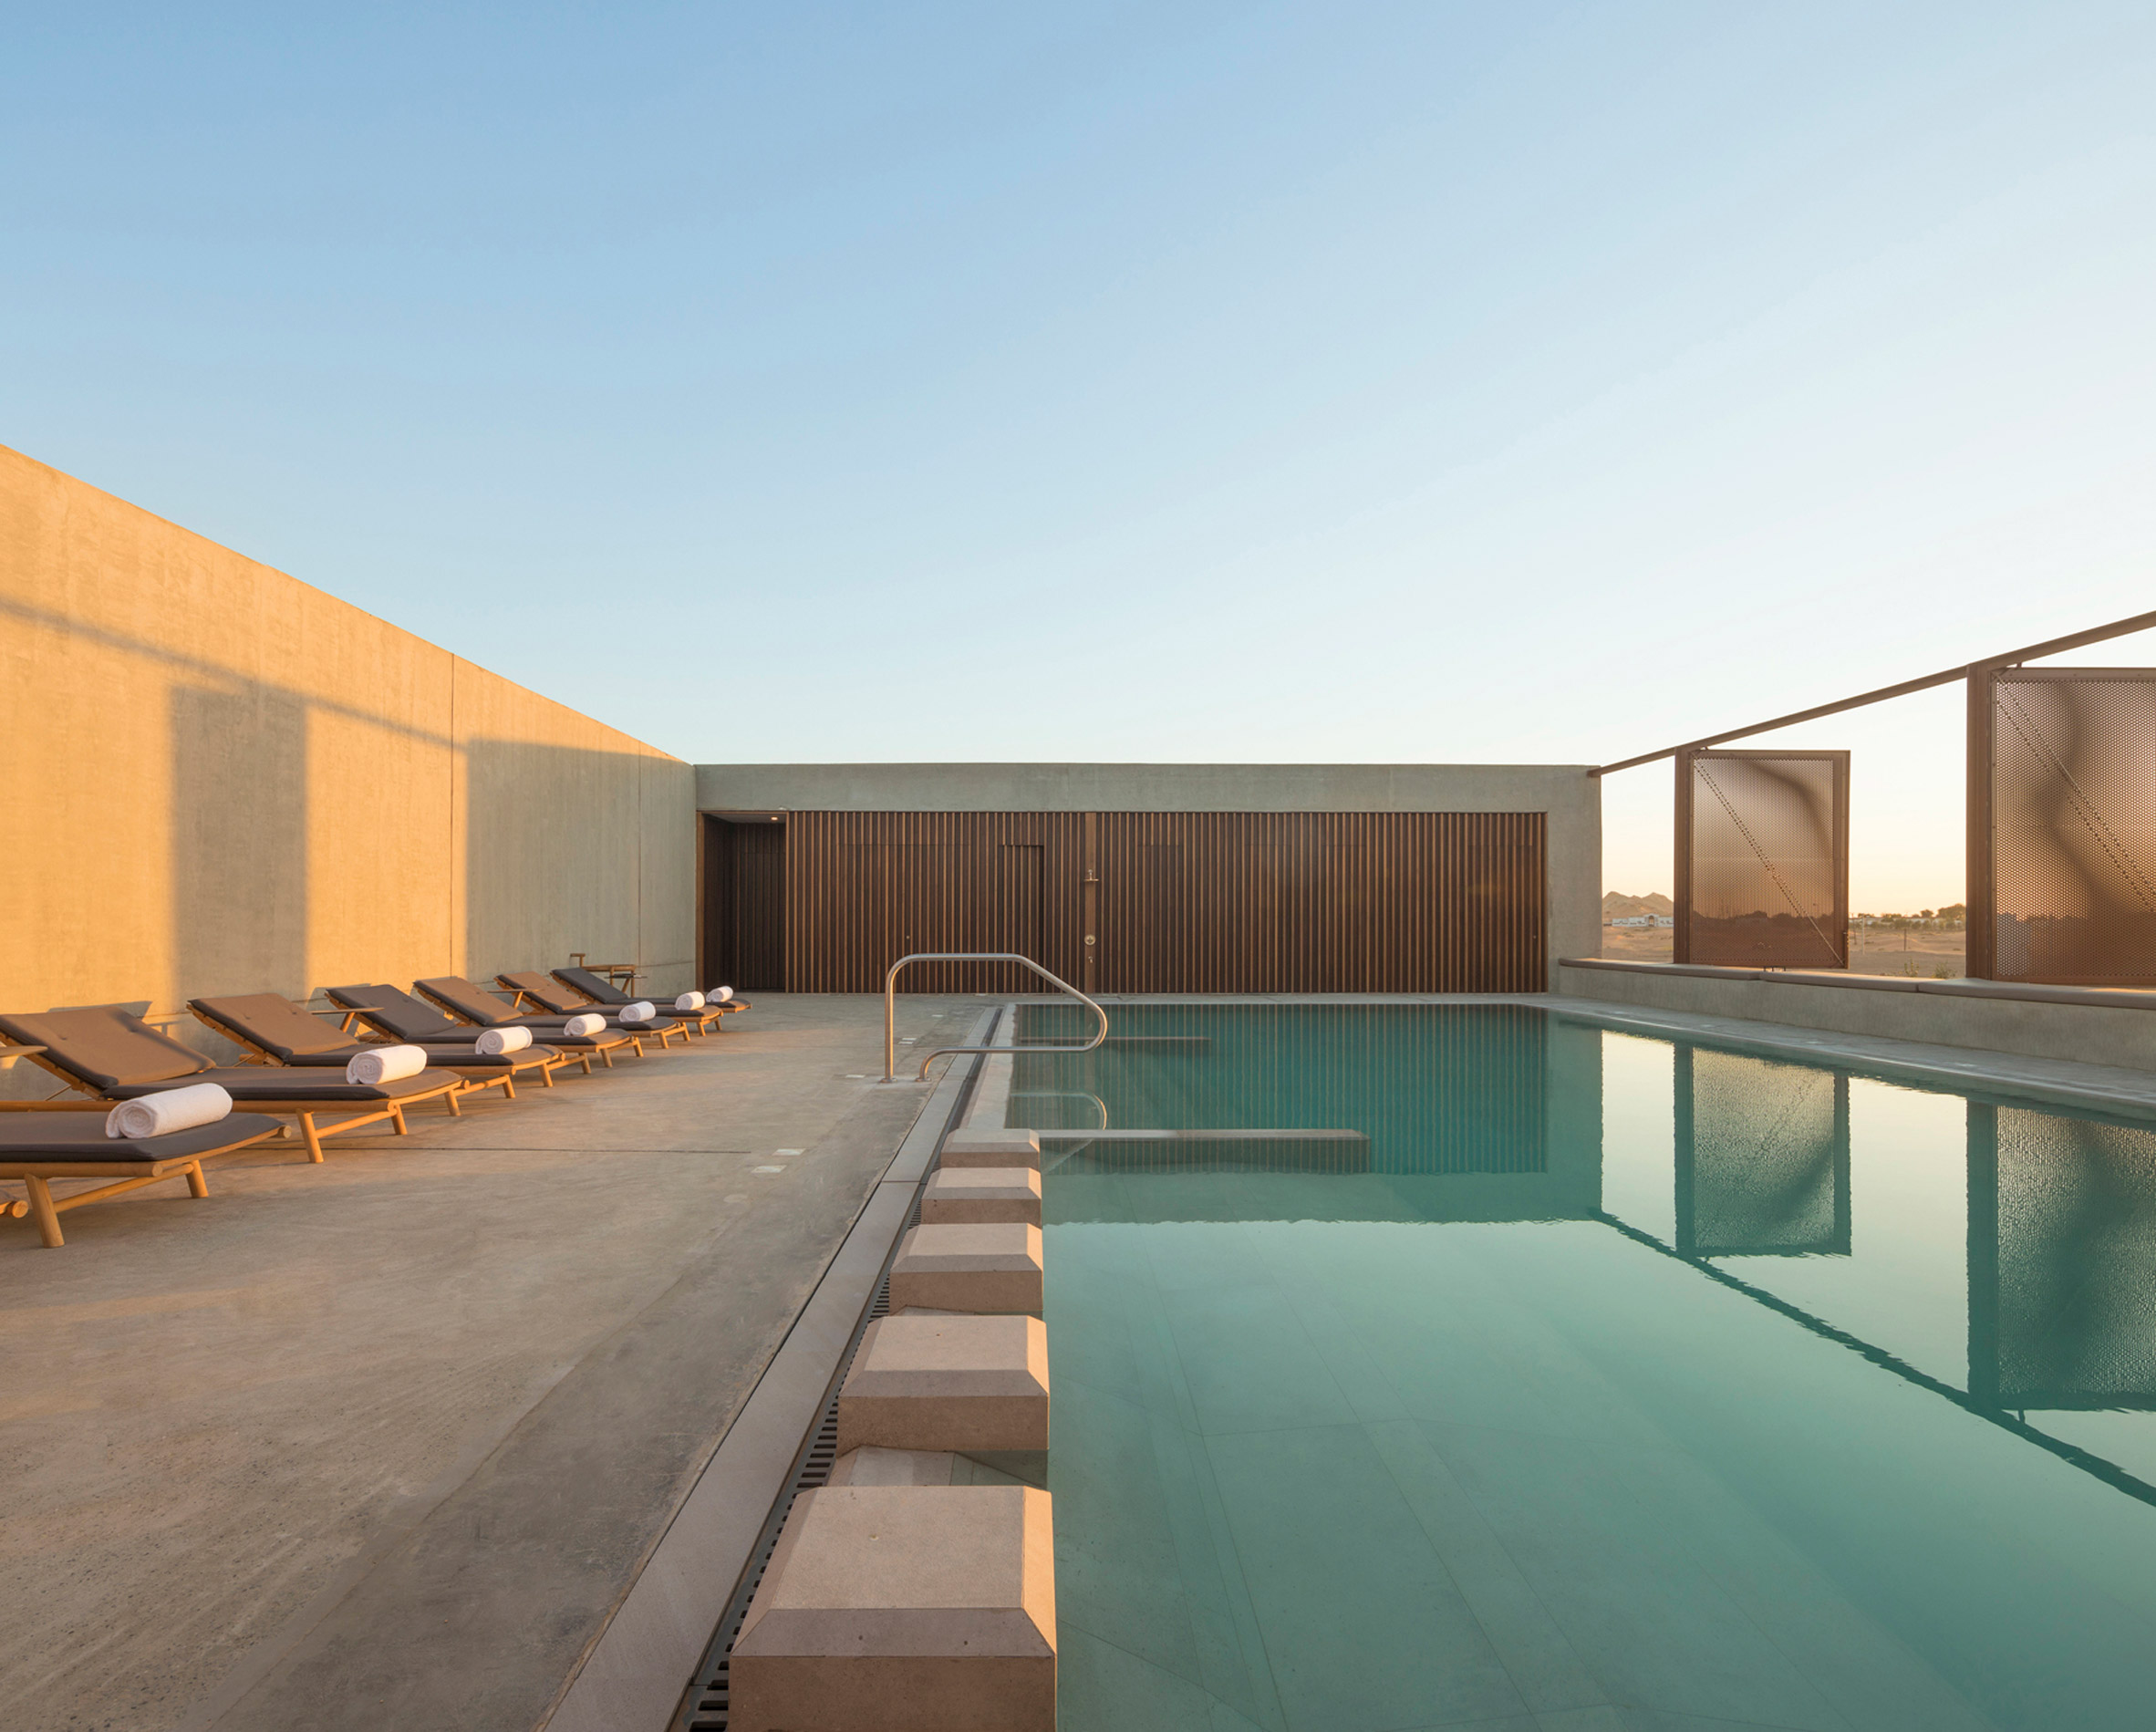 Al Faya Lodge is a hotel and spa in Sharjah by Shurooq